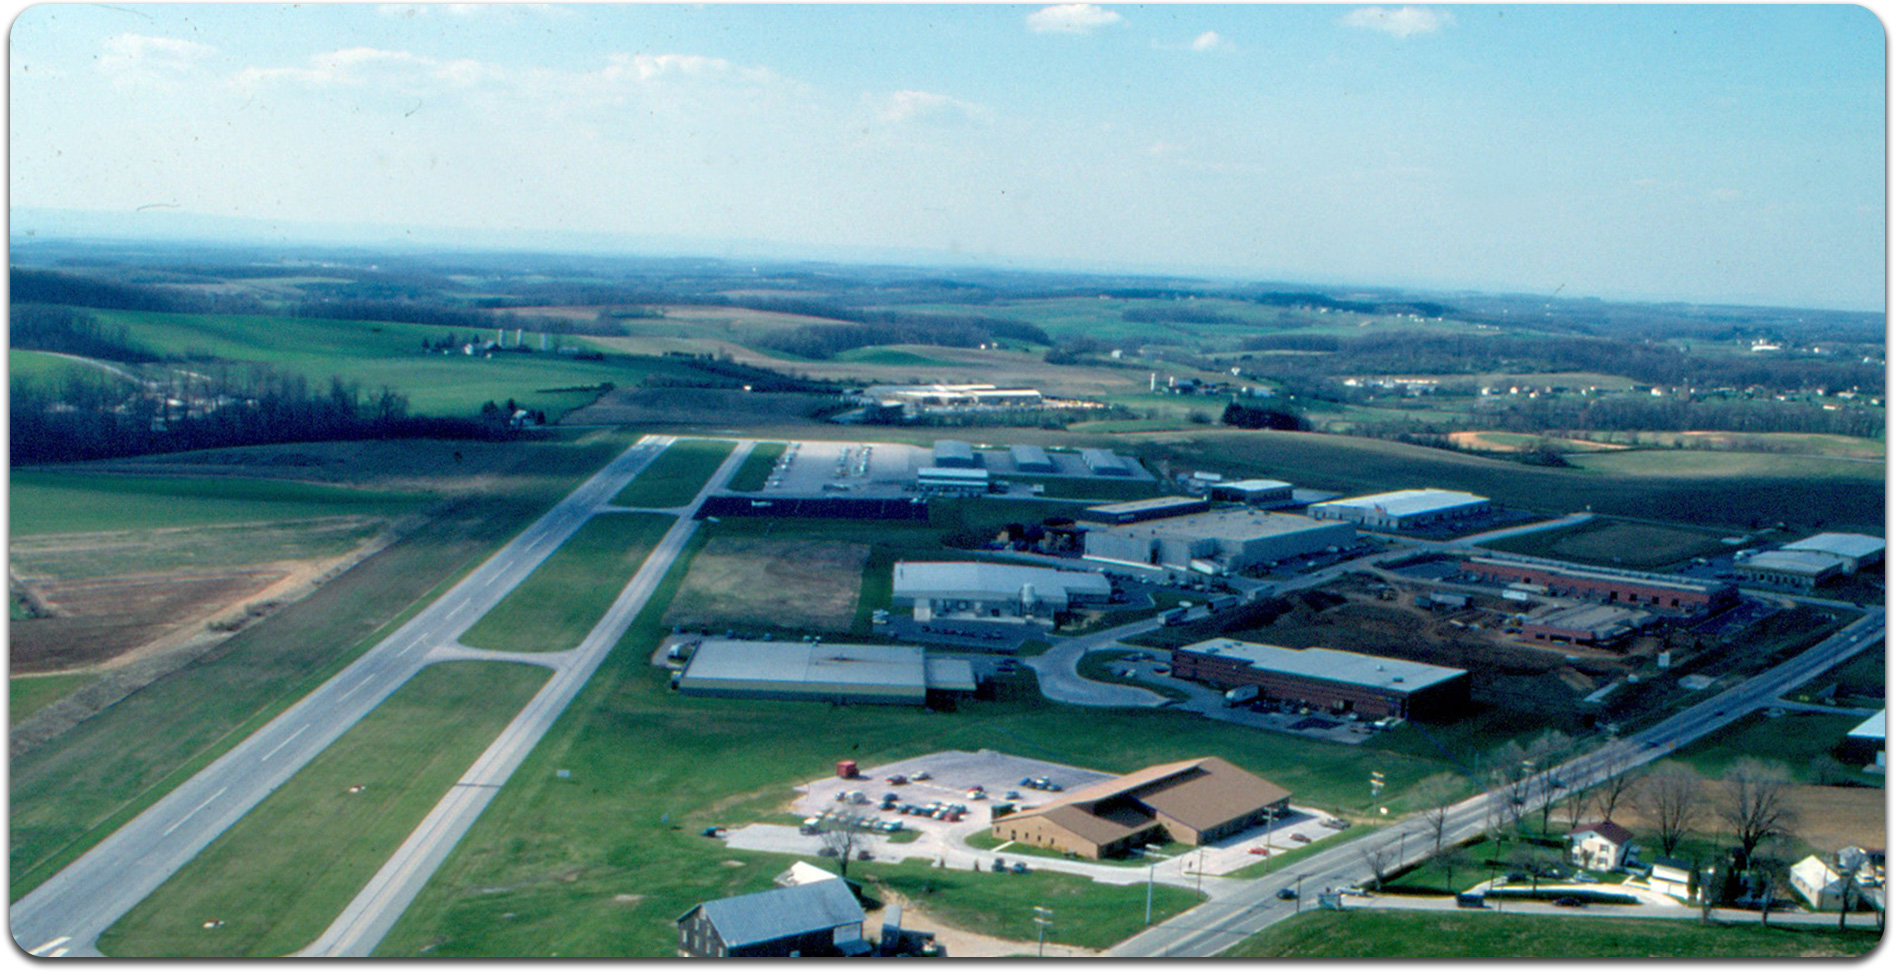 airport image from 1980